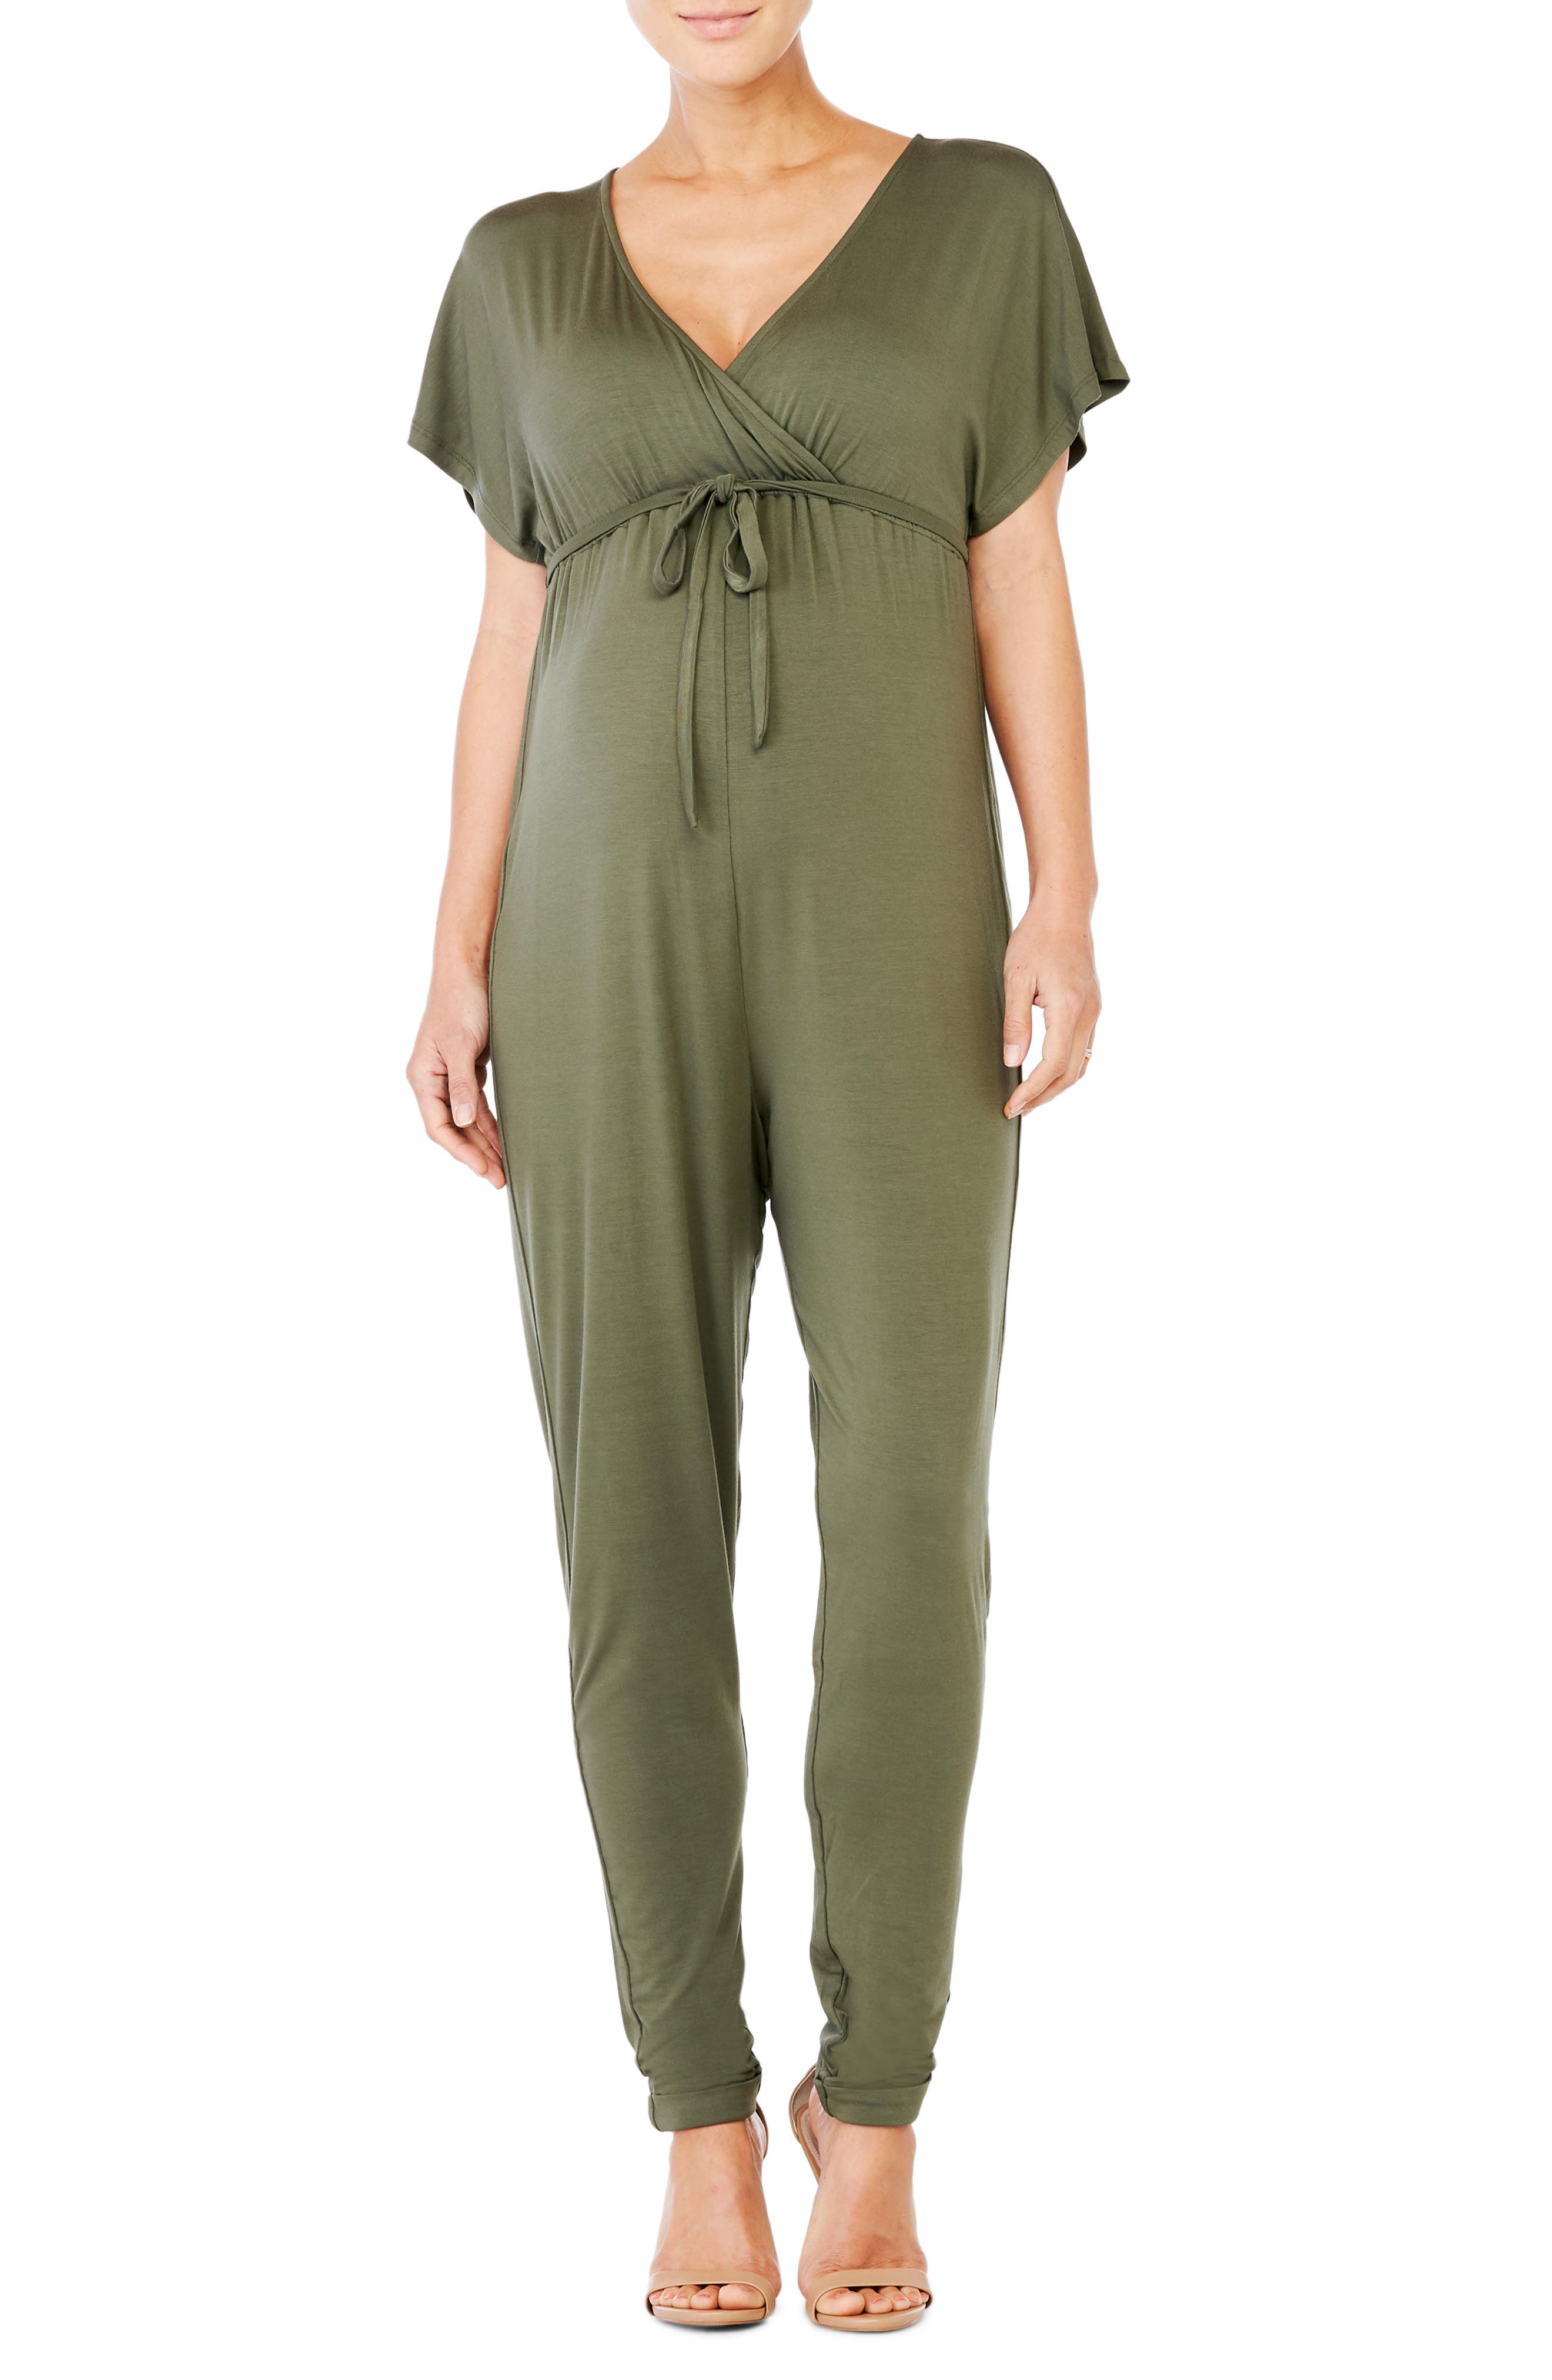 Crossover Maternity Jumpsuit,                             Main thumbnail 1, color,                             Olive